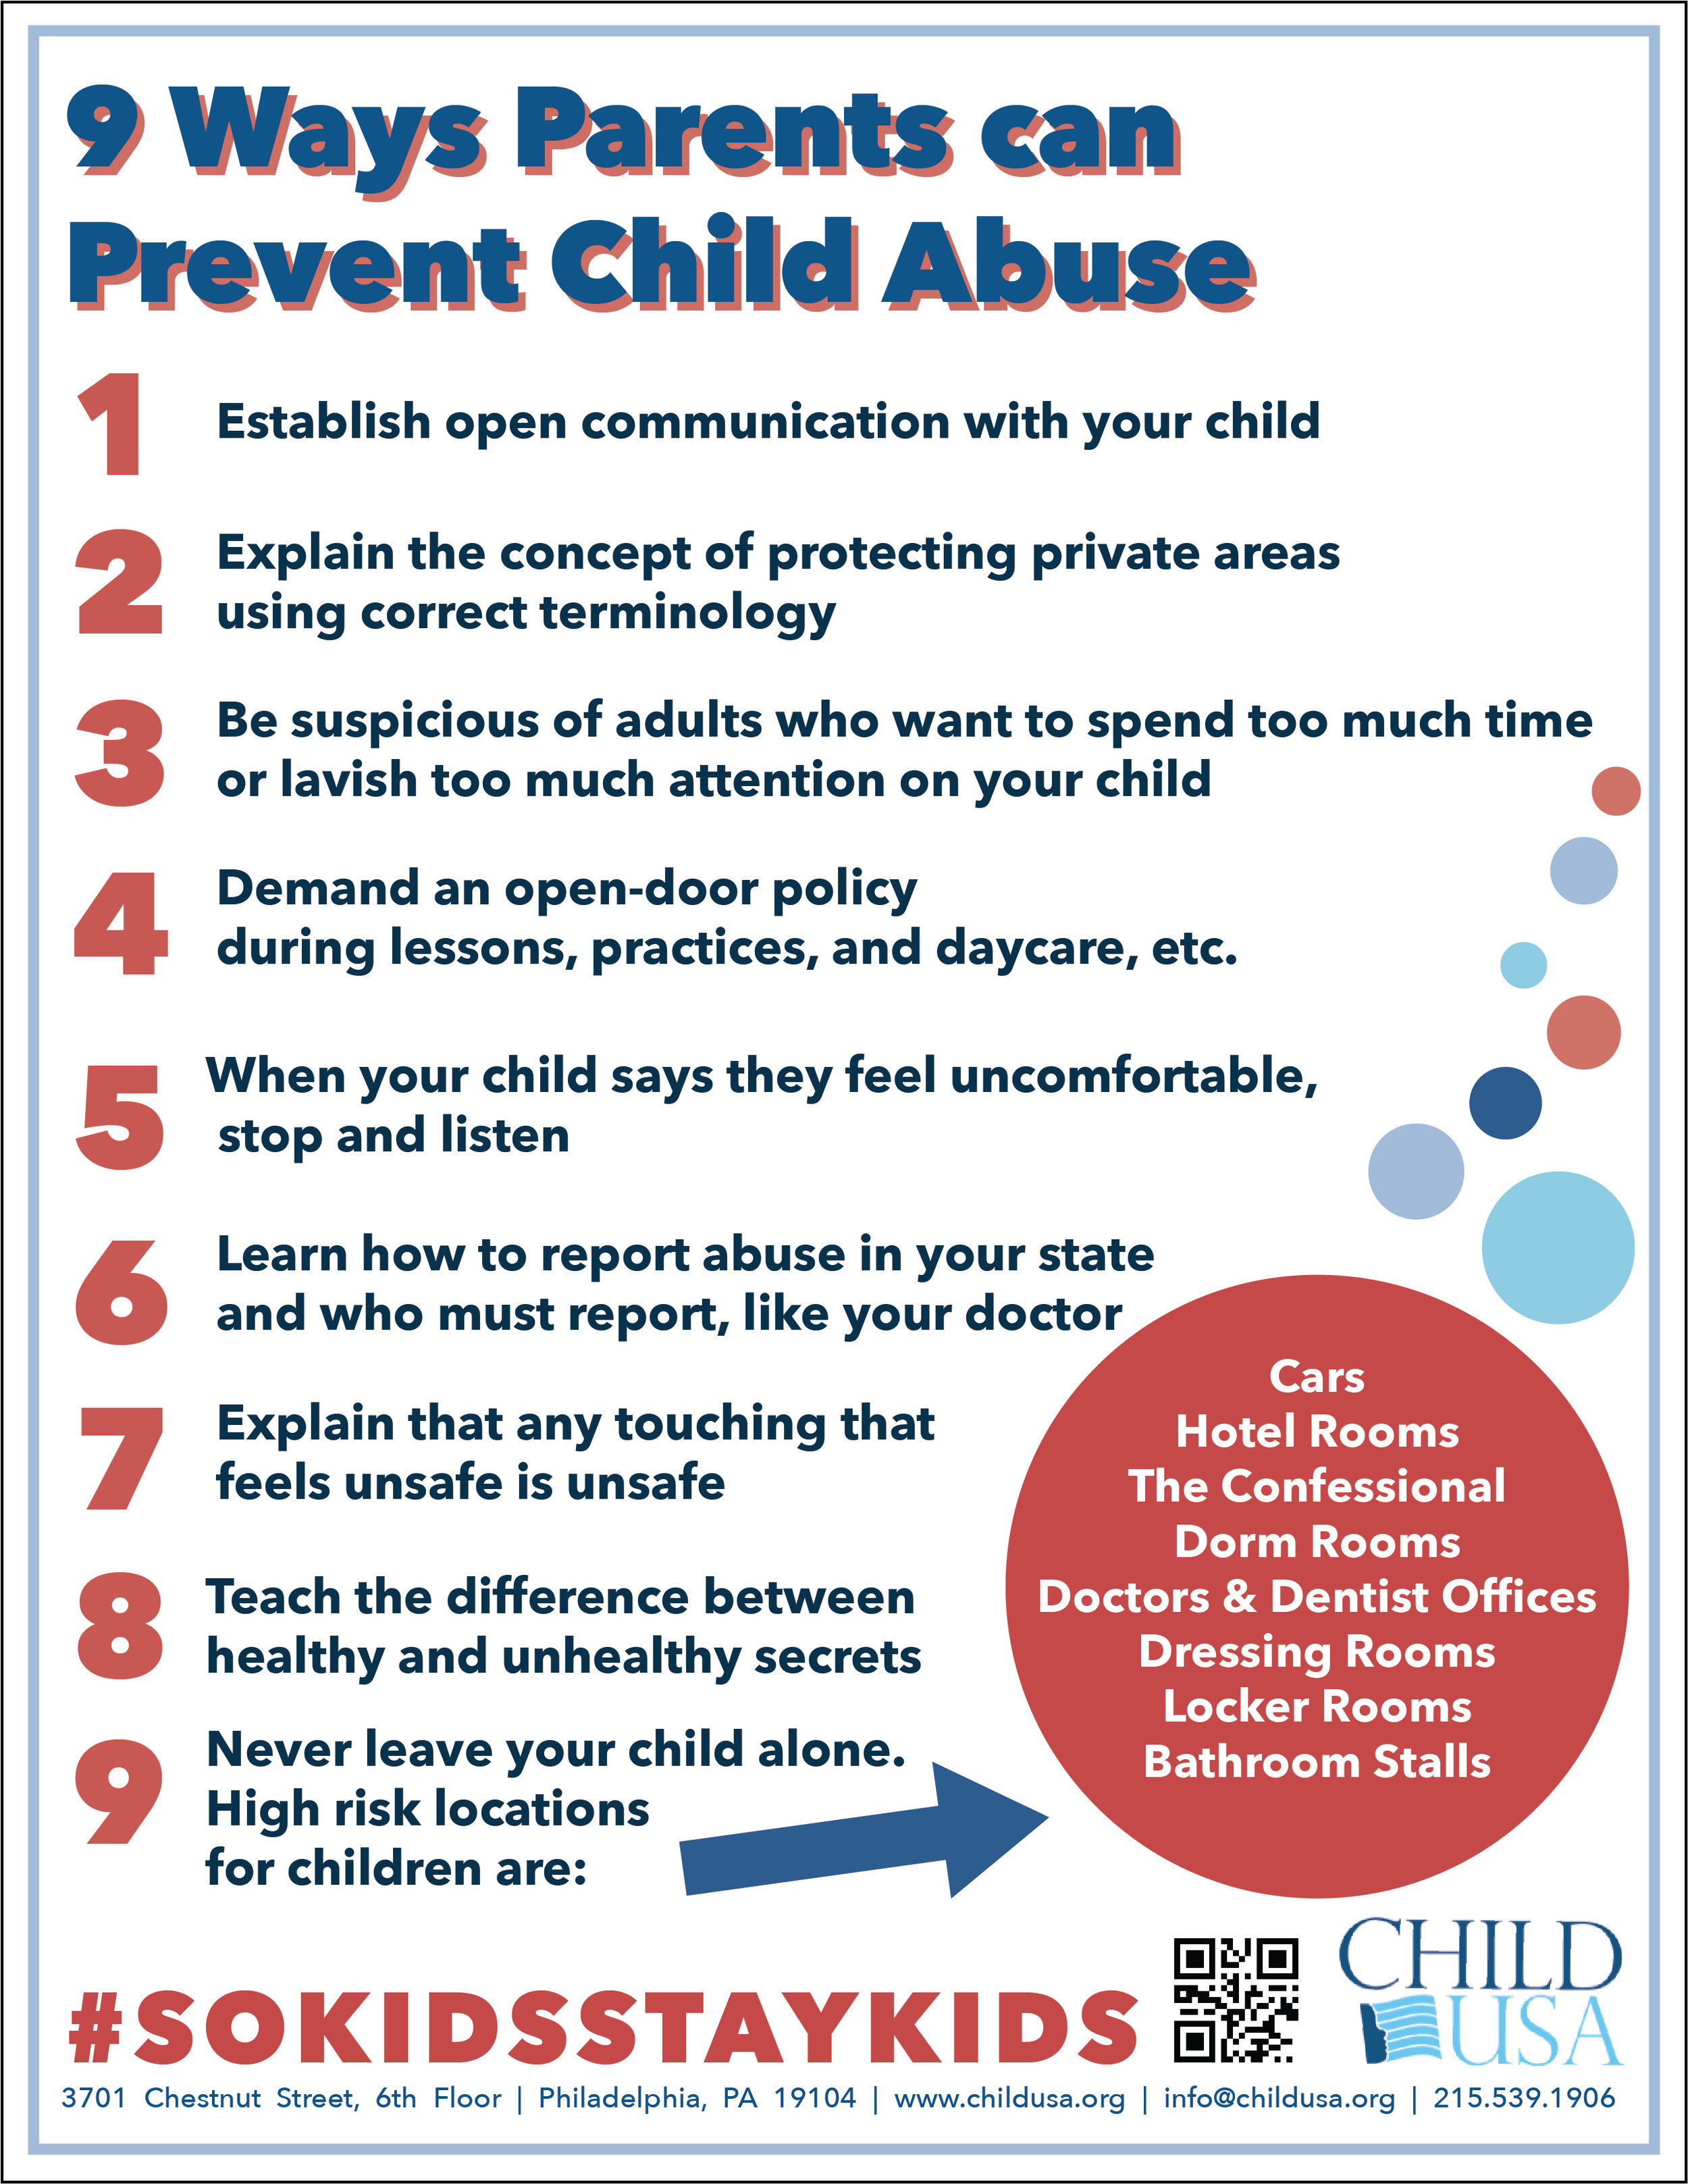 Nine Ways Parents Can Prevent Child Abuse